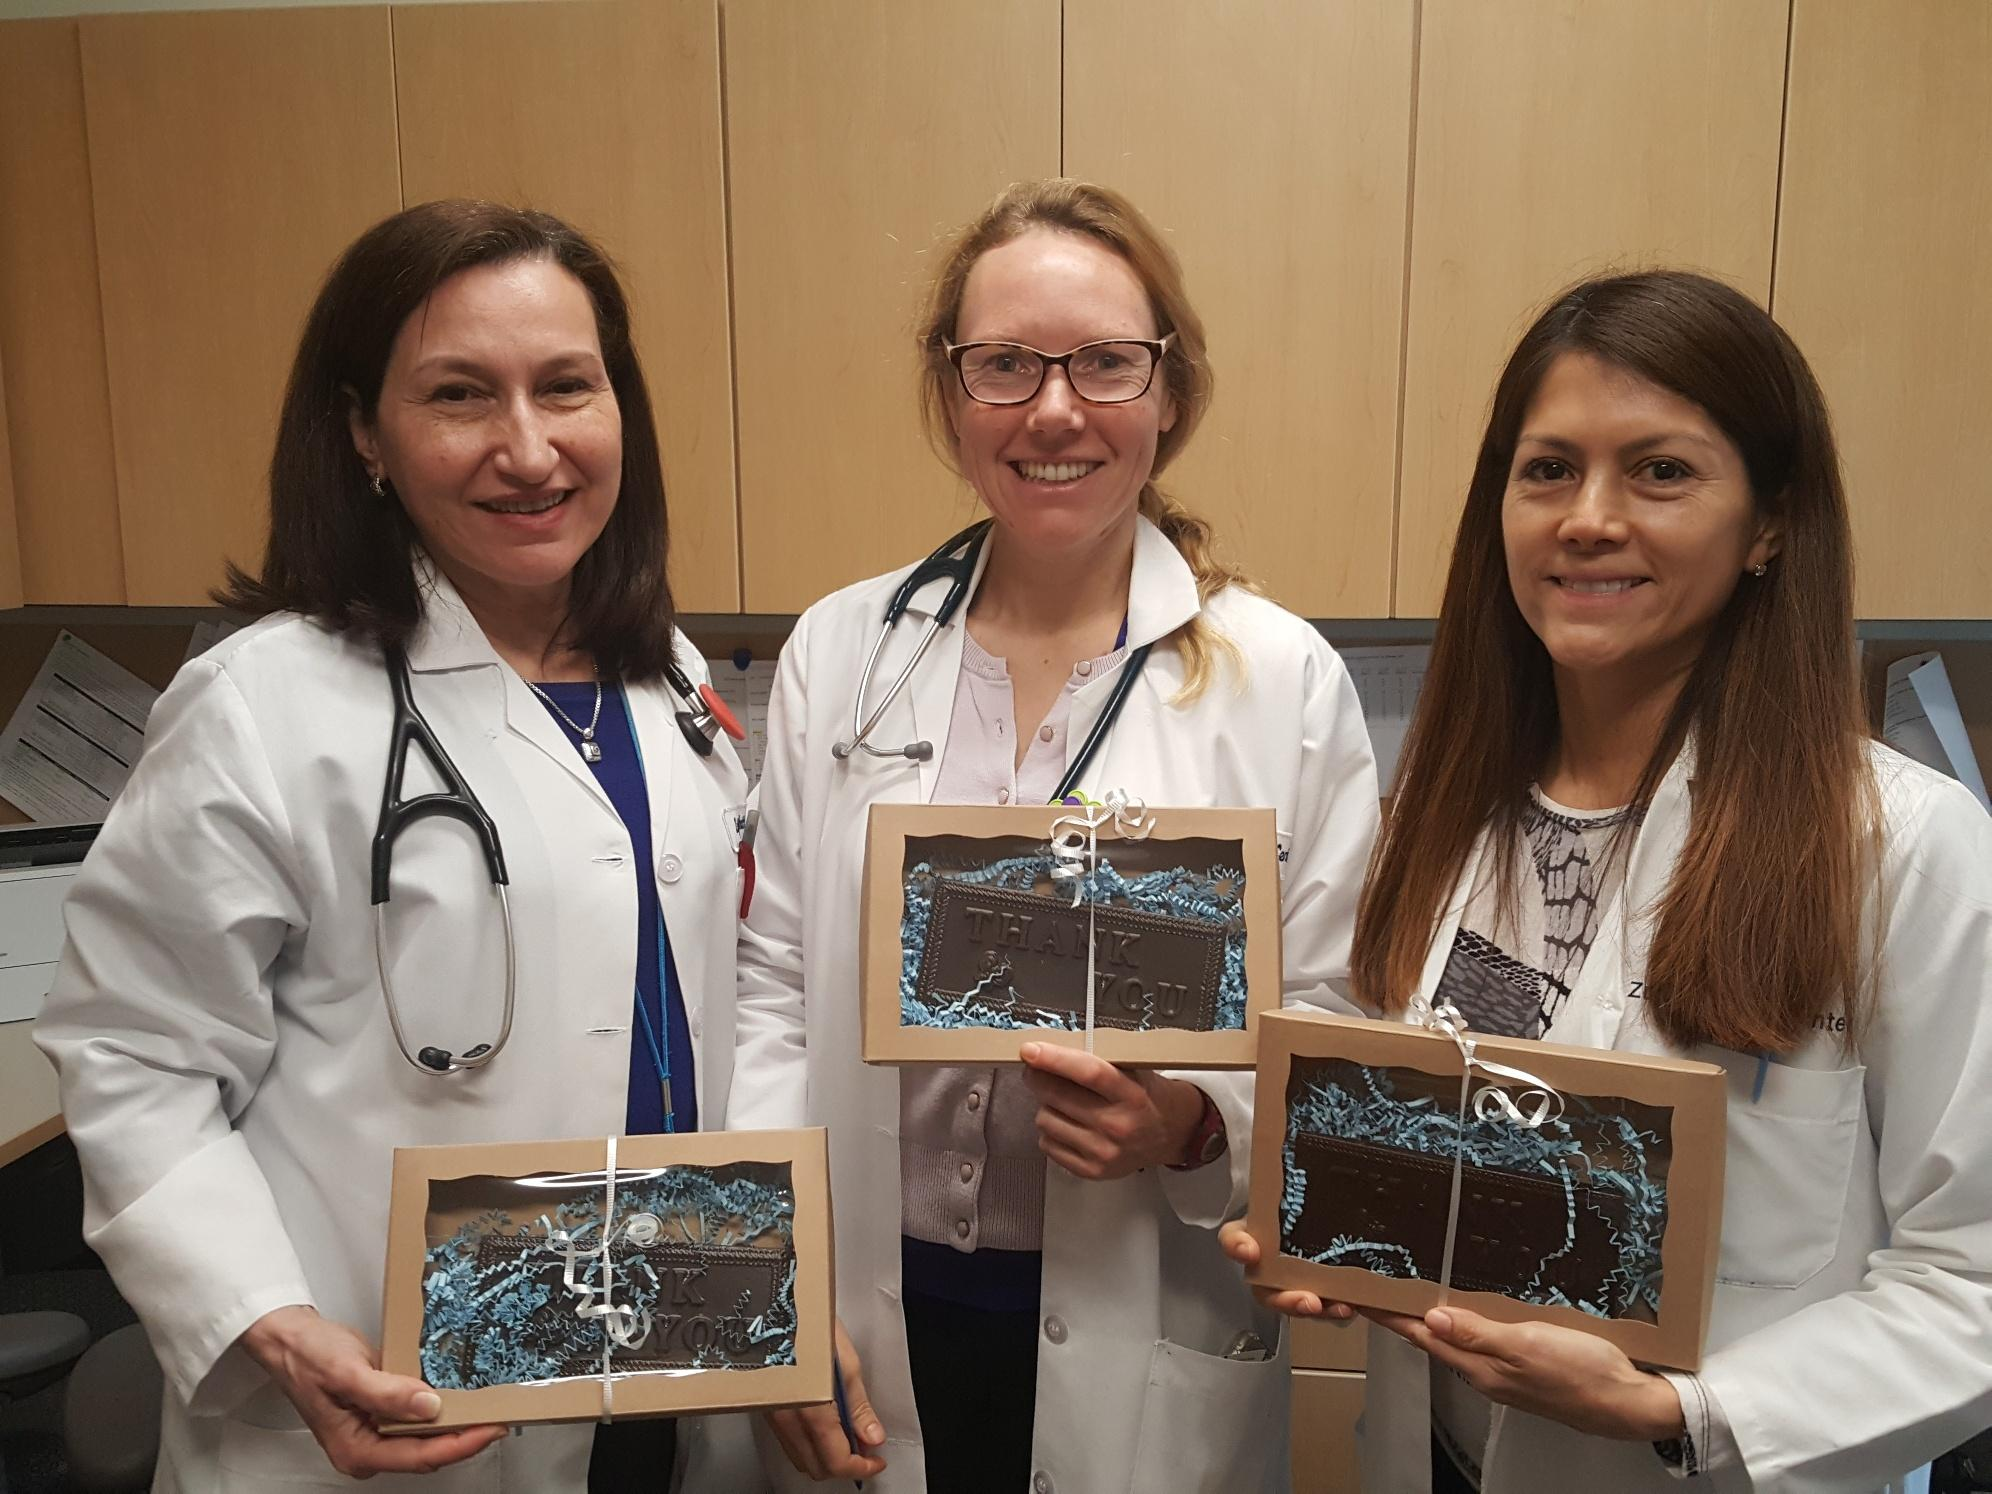 Photo of three Zufall Health medical providers holding small gifts of appreciation